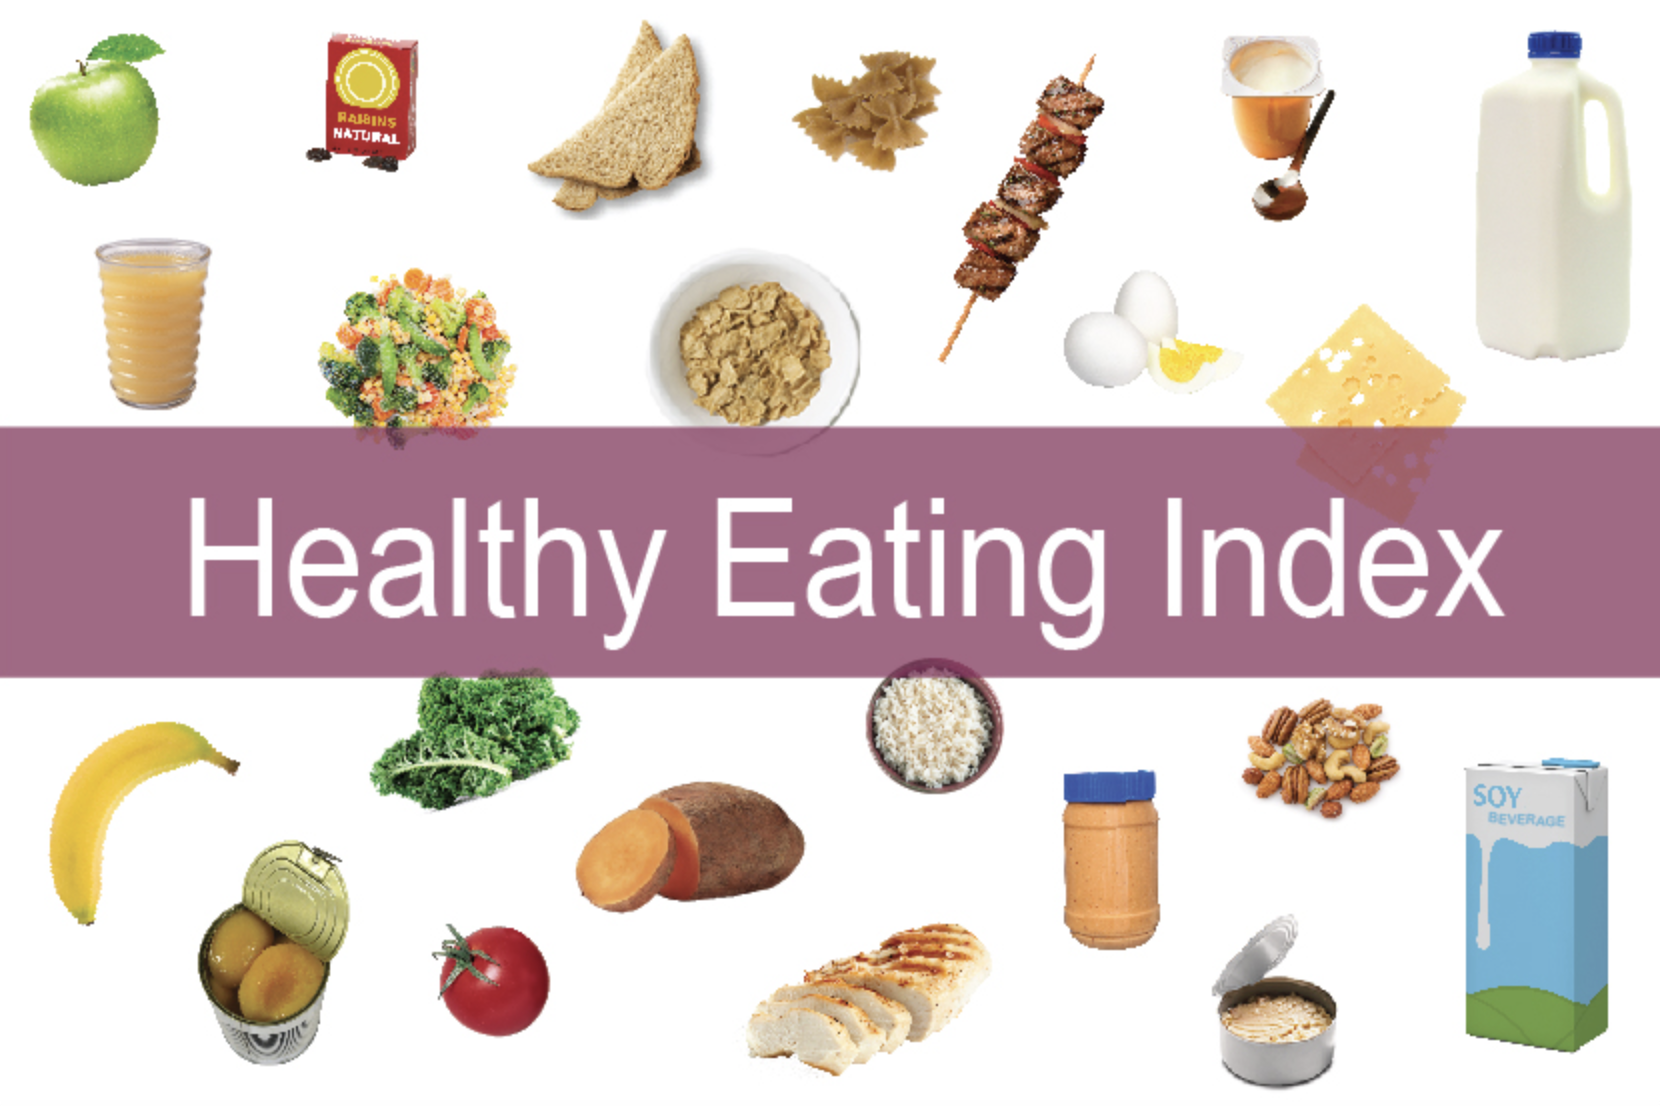 Healthy Eating Index banner with images of food around it